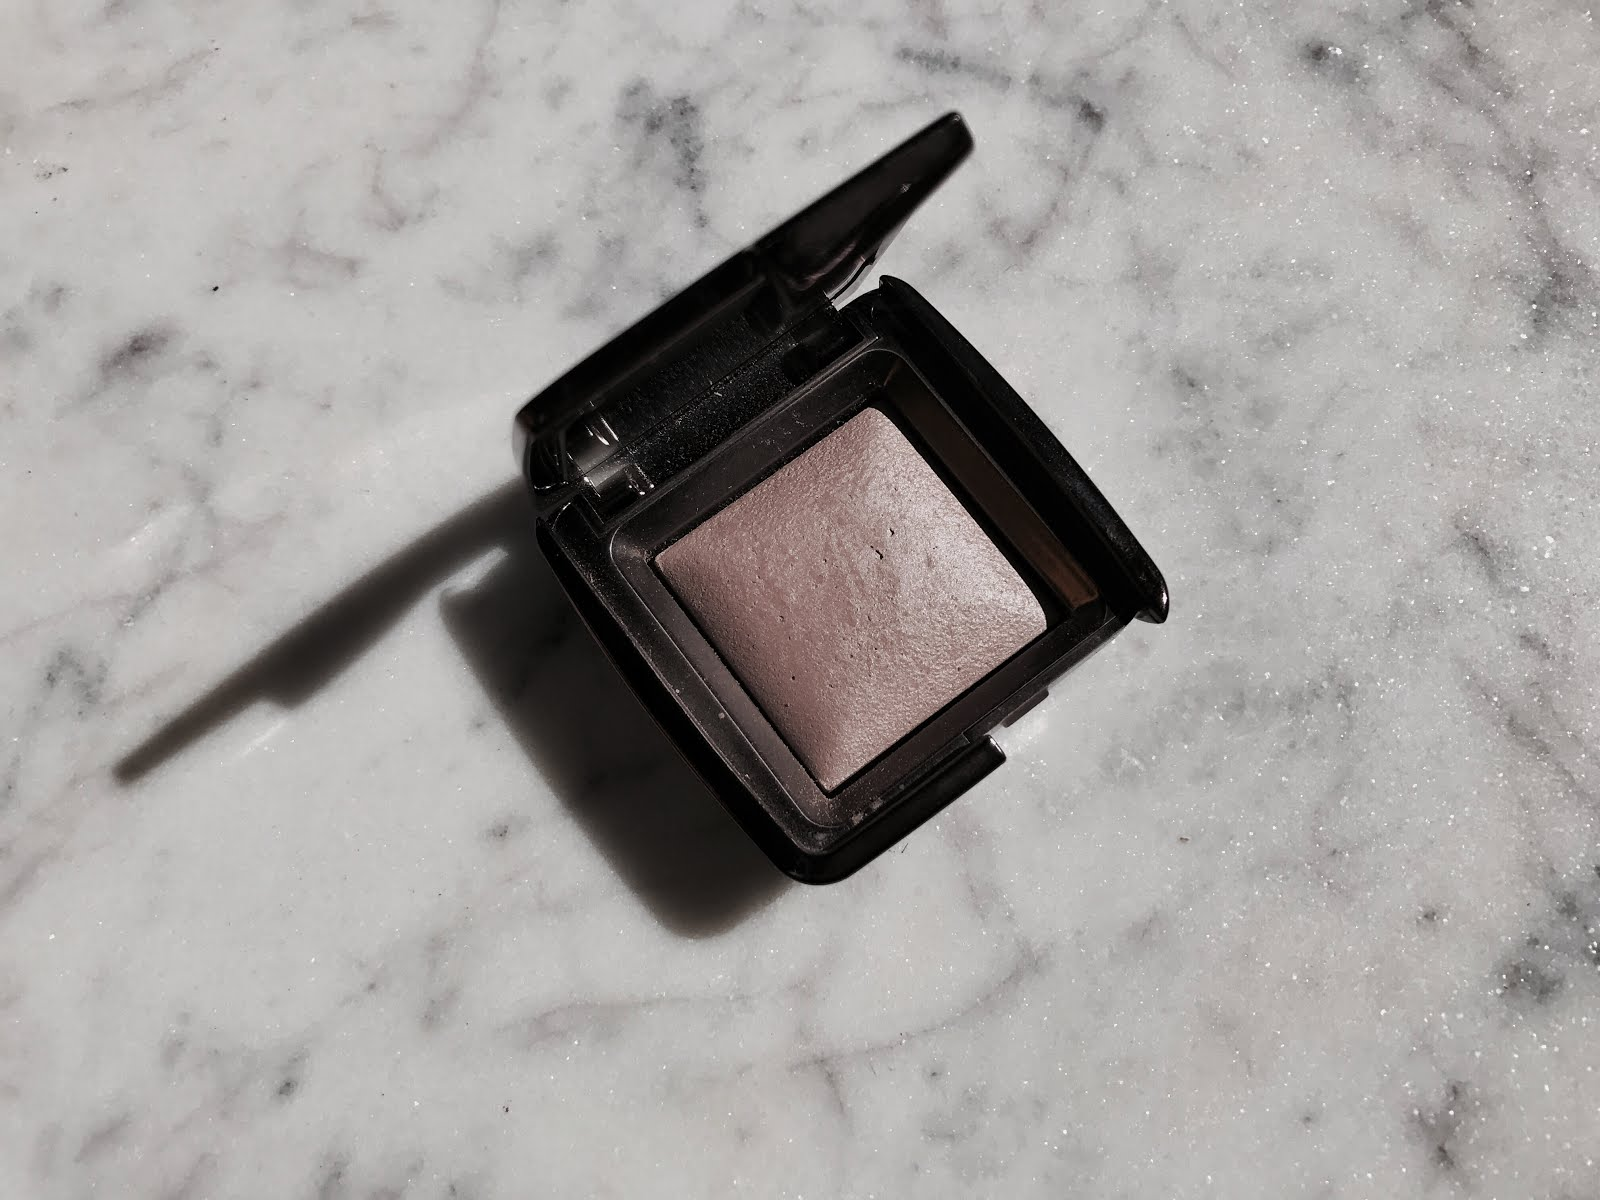 VG CHOICE: The Ambient Lighting Powder, Hourglass